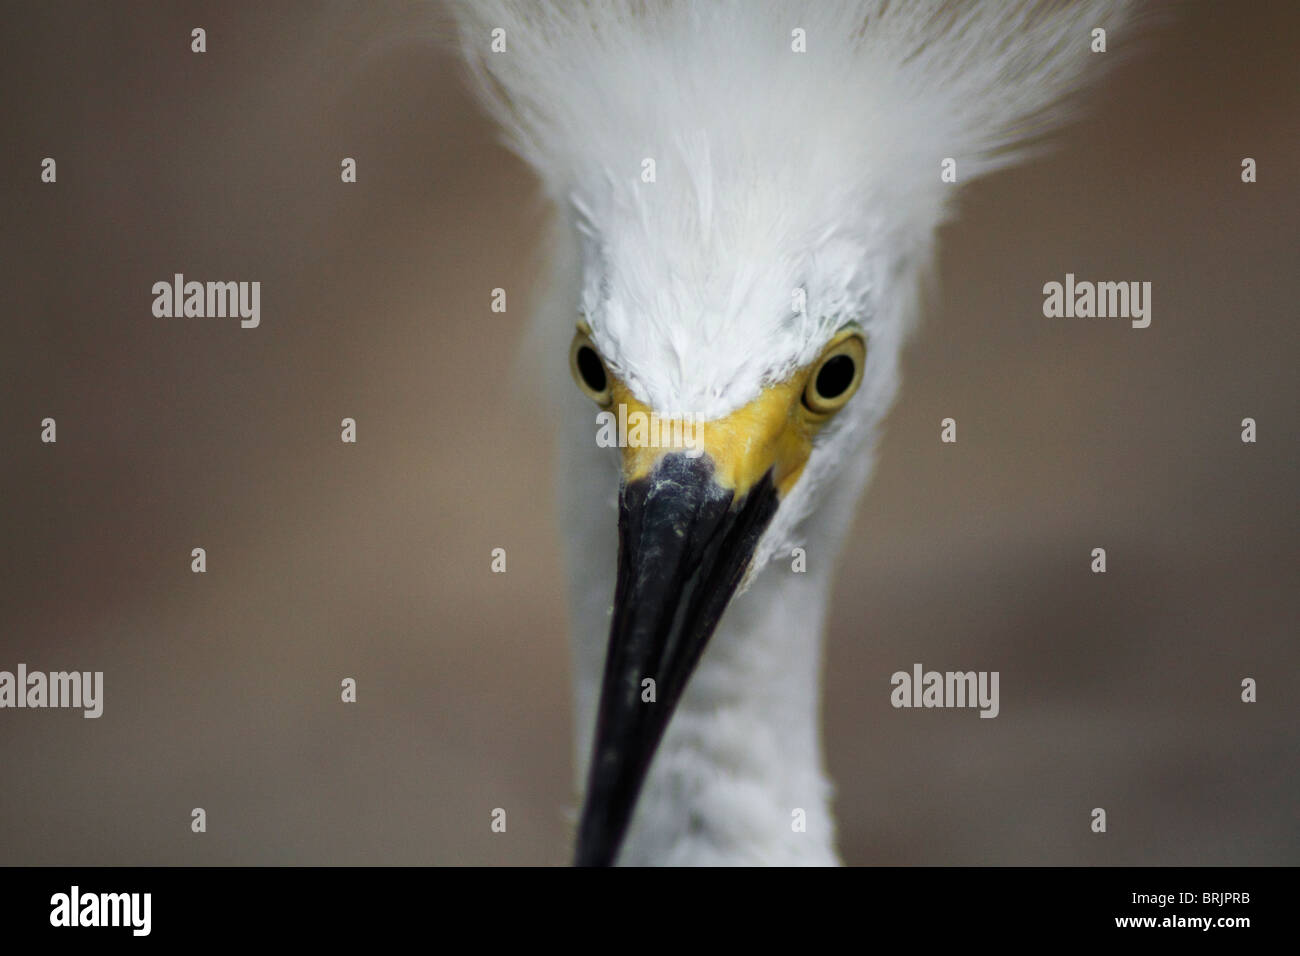 A close-up photograph of a Snow Egret (Snowy Egret) in Orlando, Florida. - Stock Image